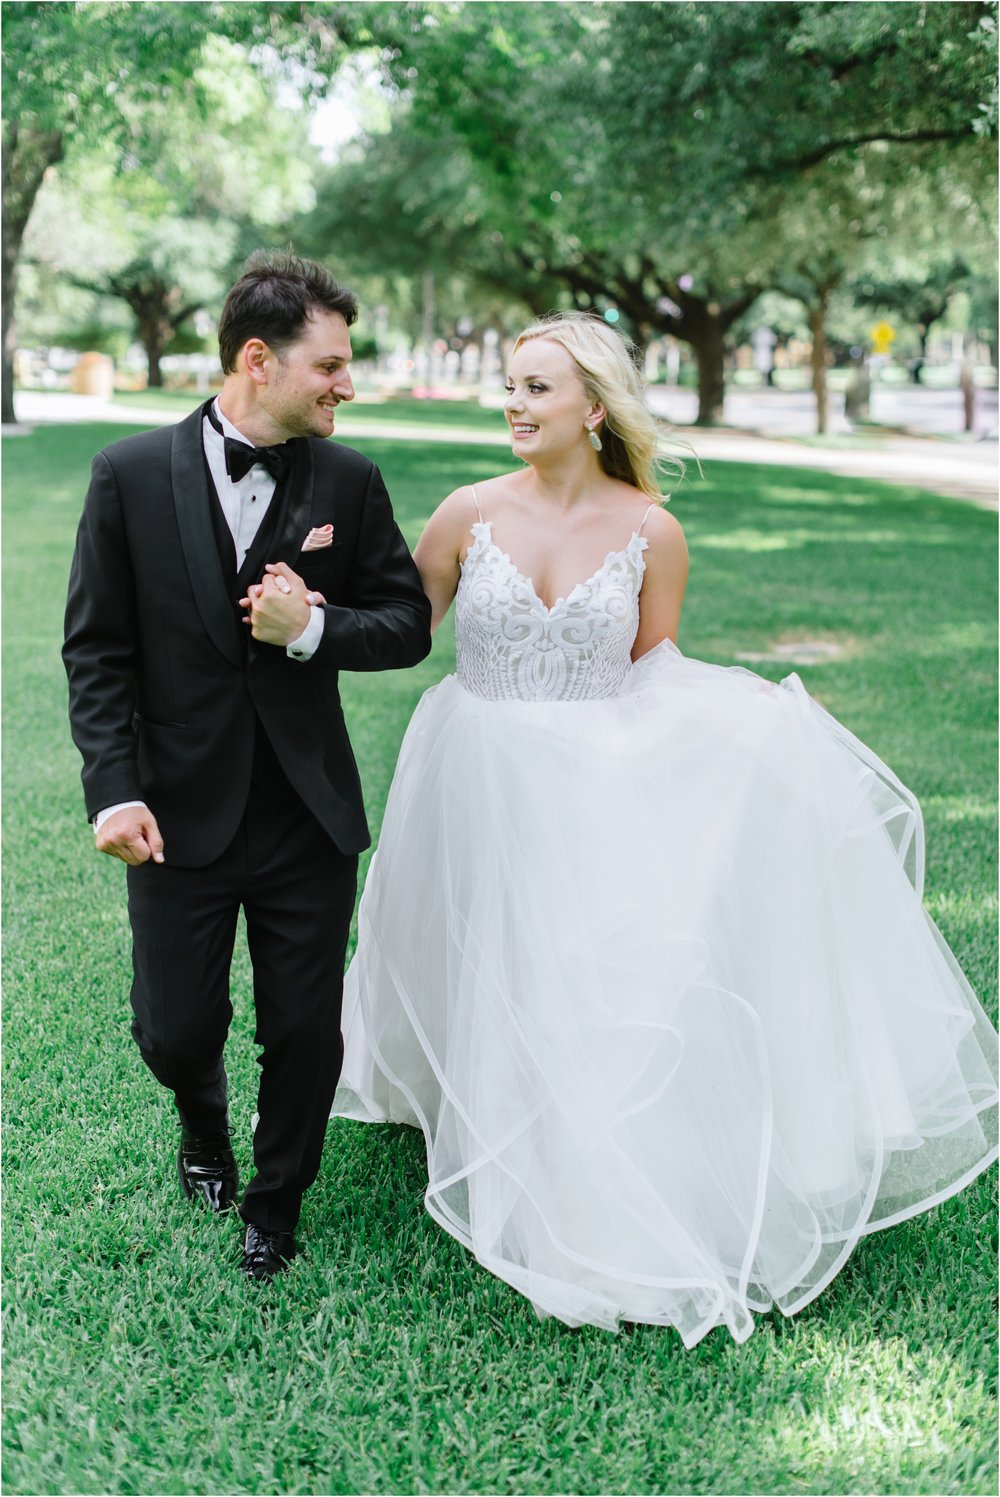 dallasweddingphotographer_fortworthweddingphotographer_texasweddingphotographer_mattandjulieweddings_0013.jpg